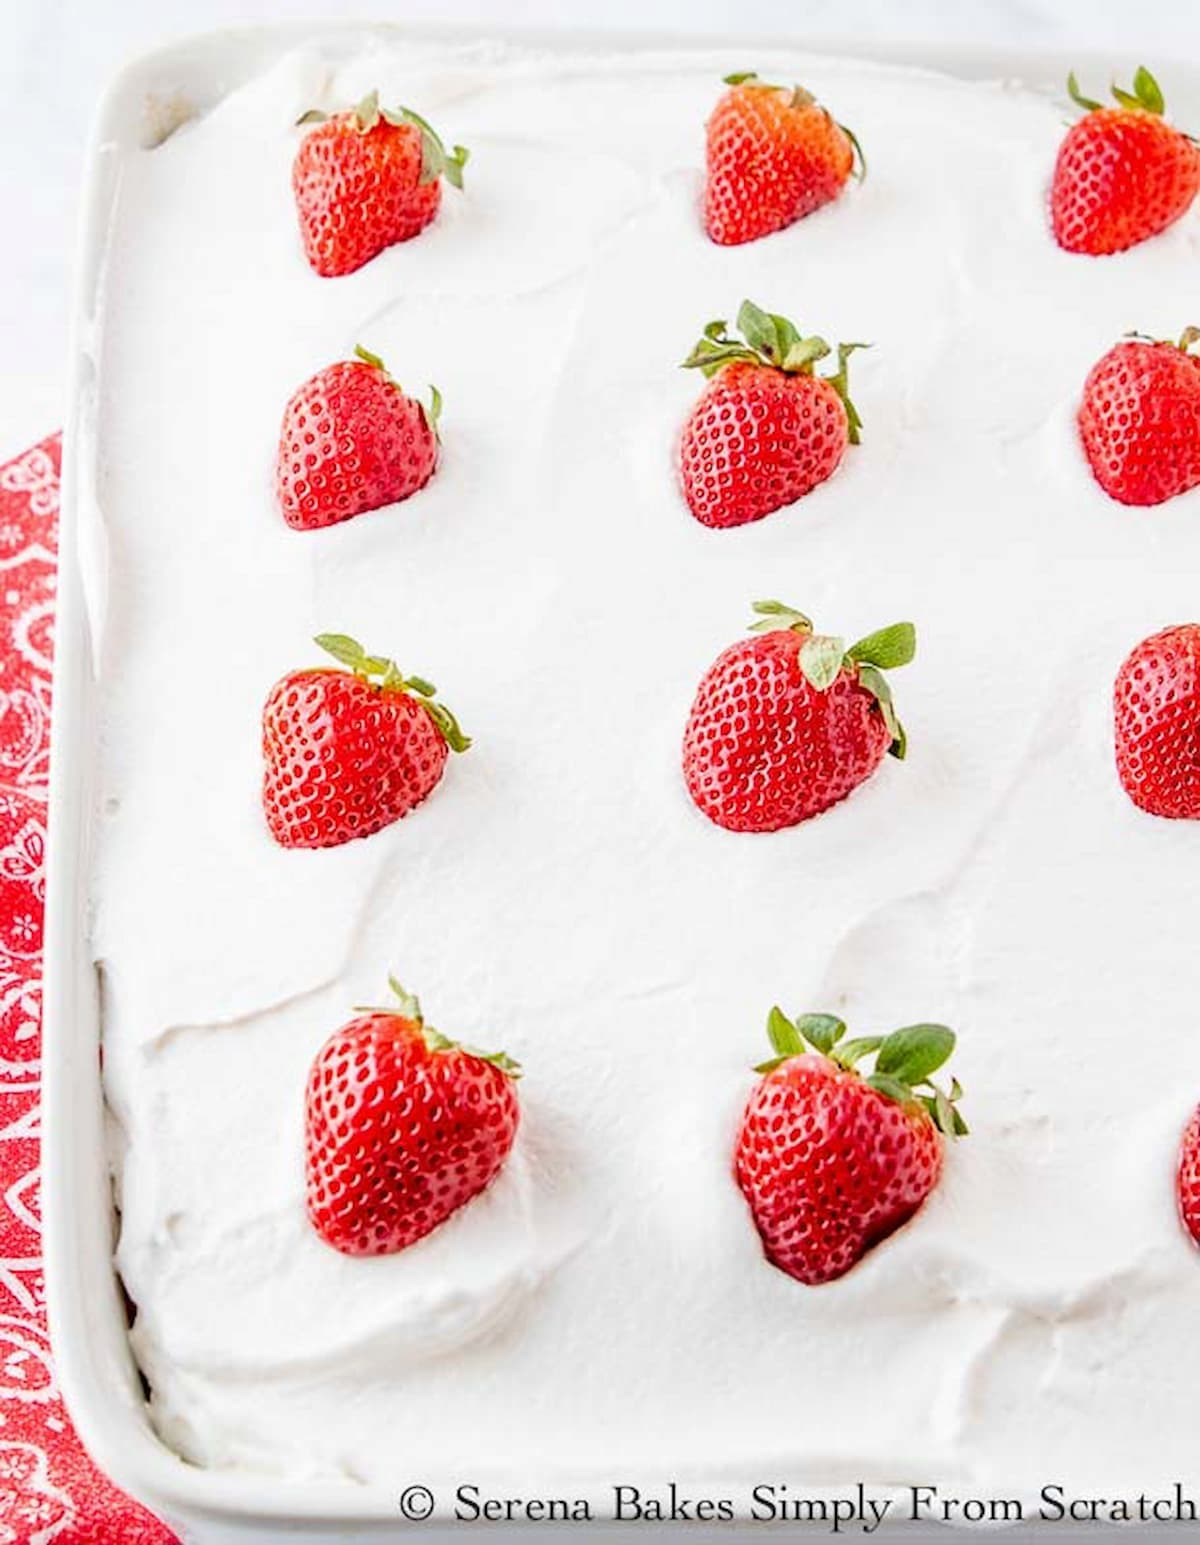 A down  shot of Strawberry Shortcake Poke Cake in a white pan covered with whipped cream and whole strawberries.